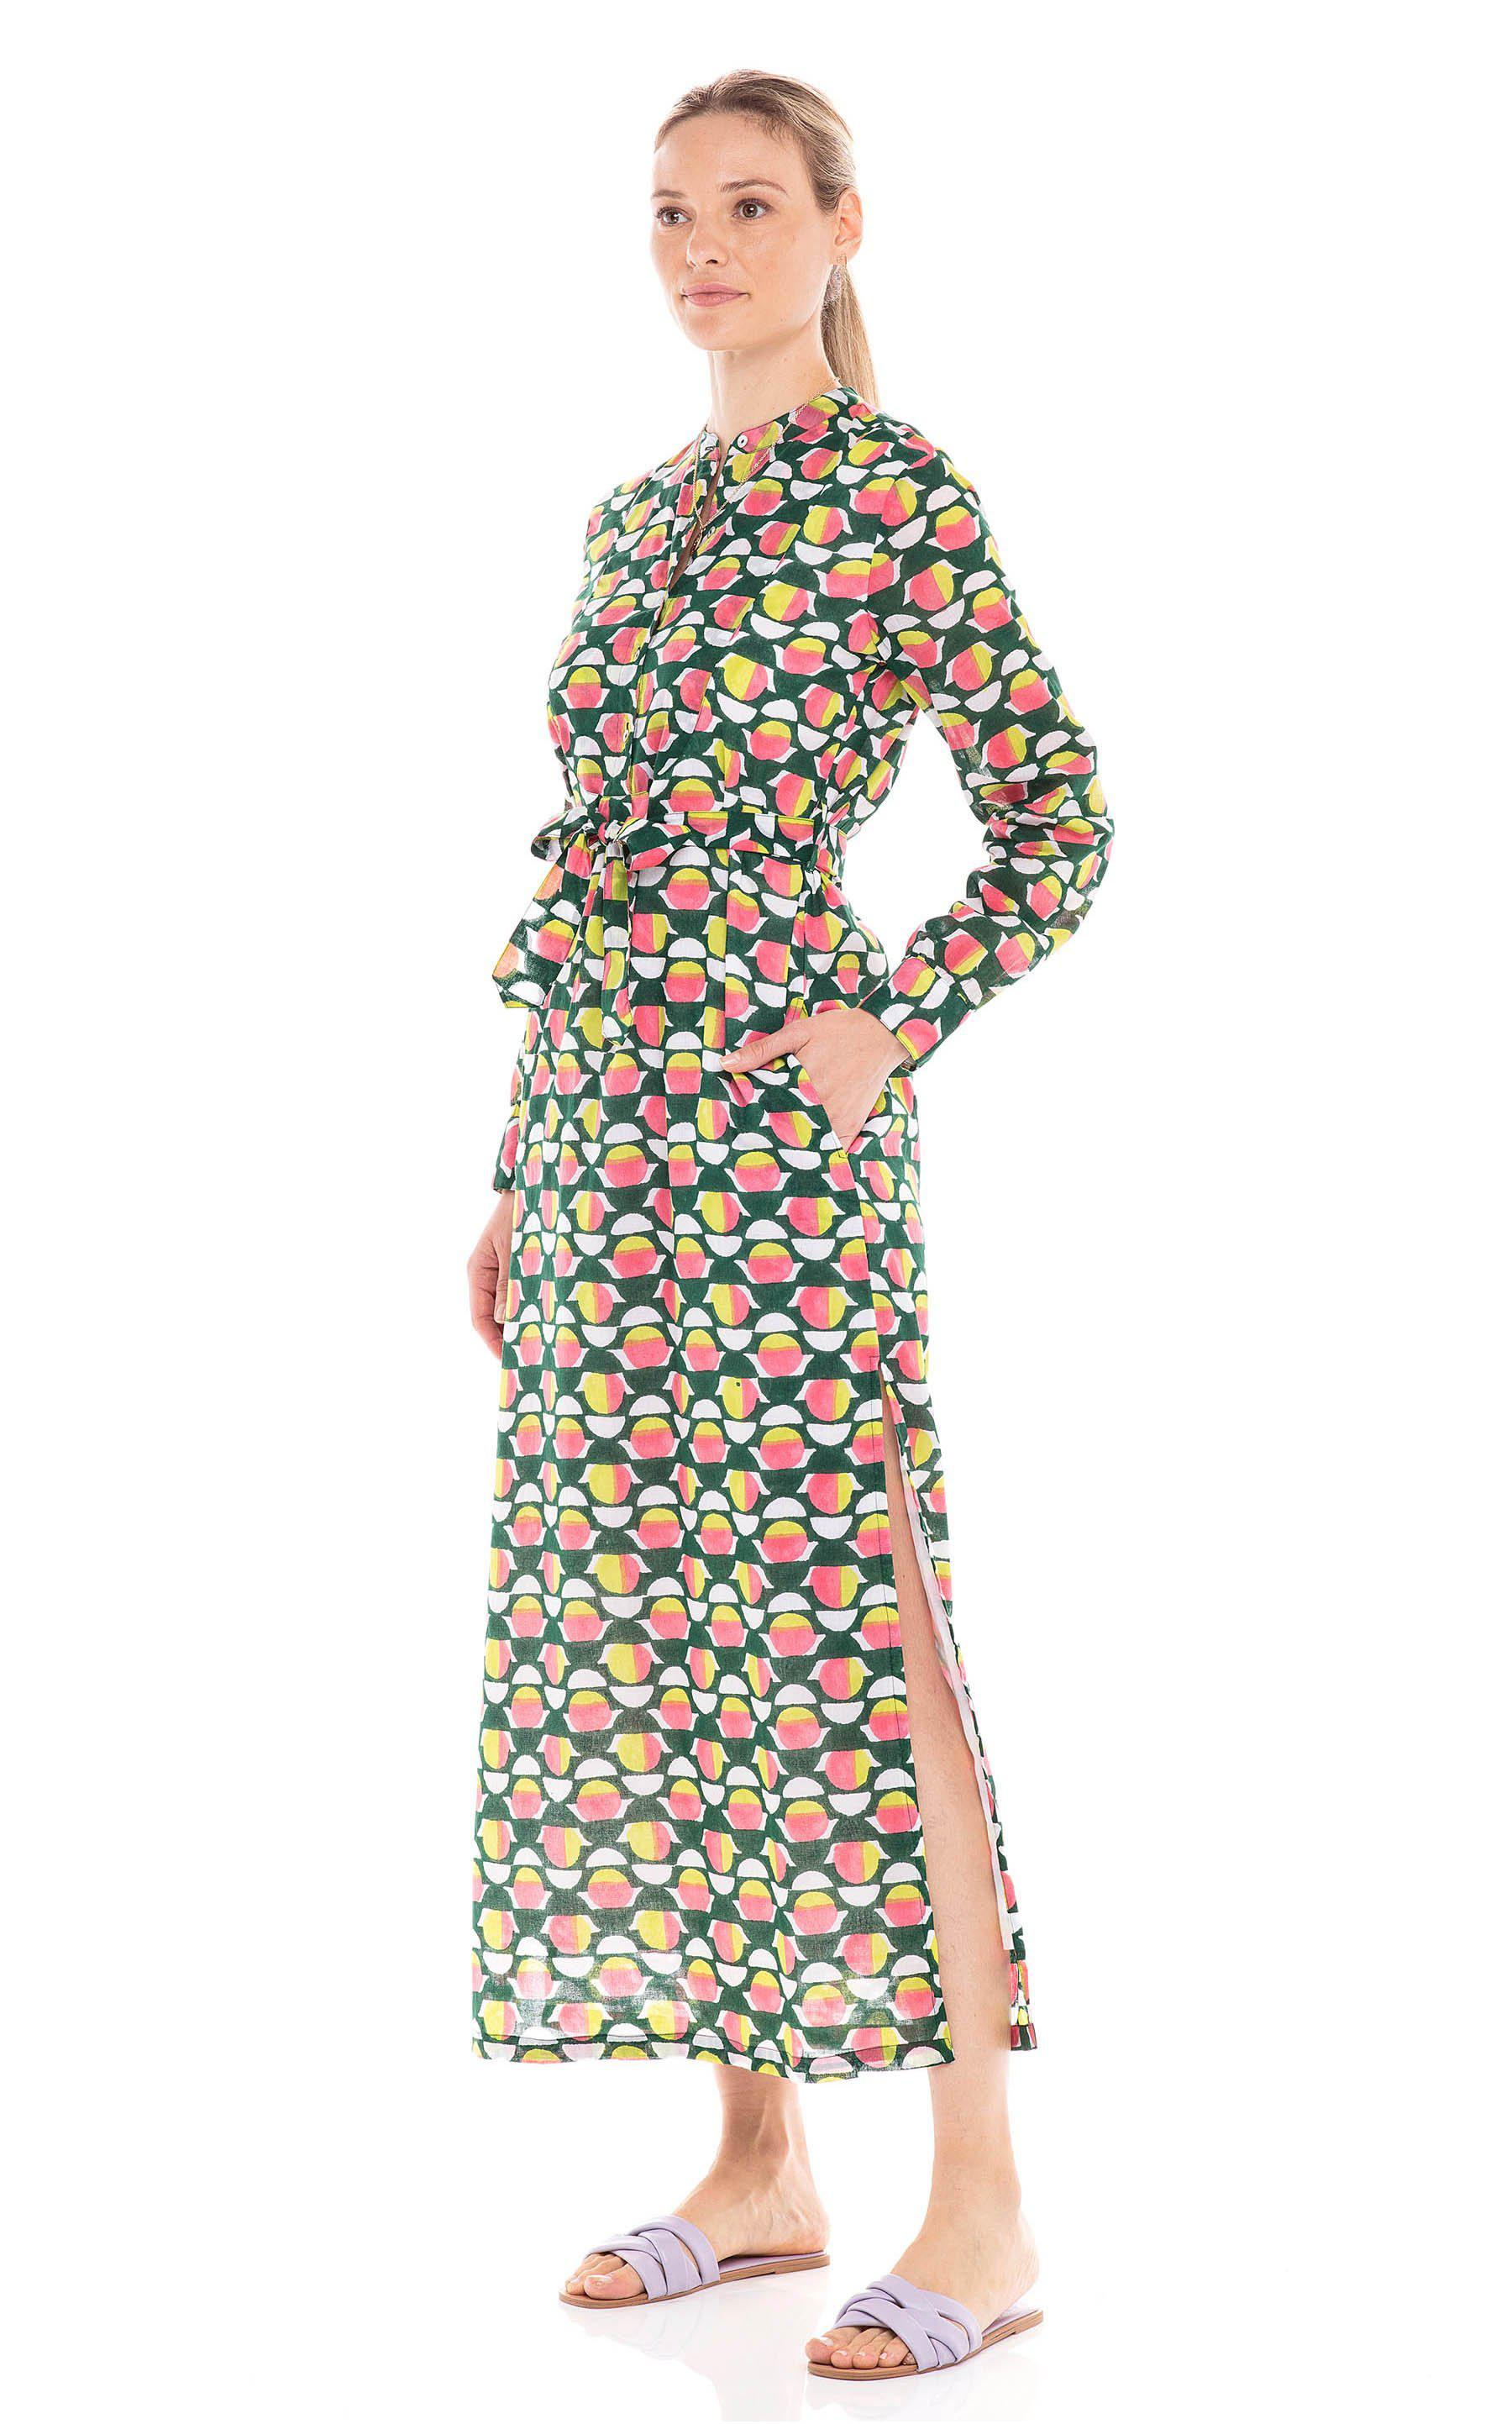 Crystal Dress Curlew Curve Lime Green 3